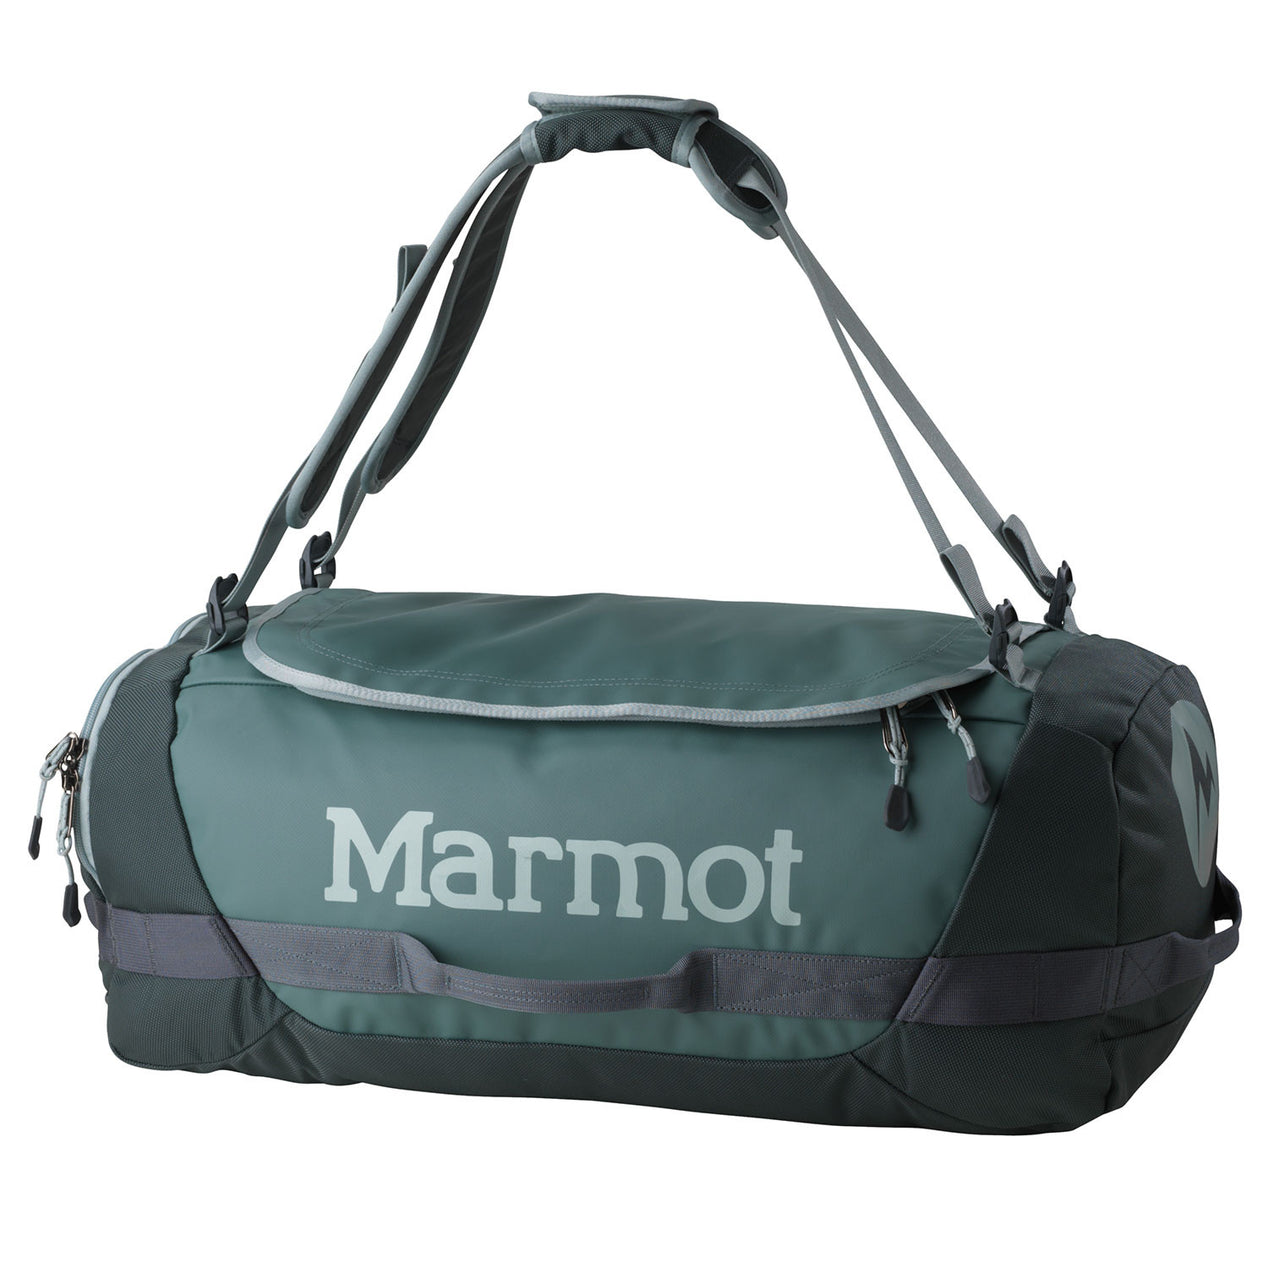 1d0d1b3de0e1 Marmot Long Hauler Duffel Bag Medium